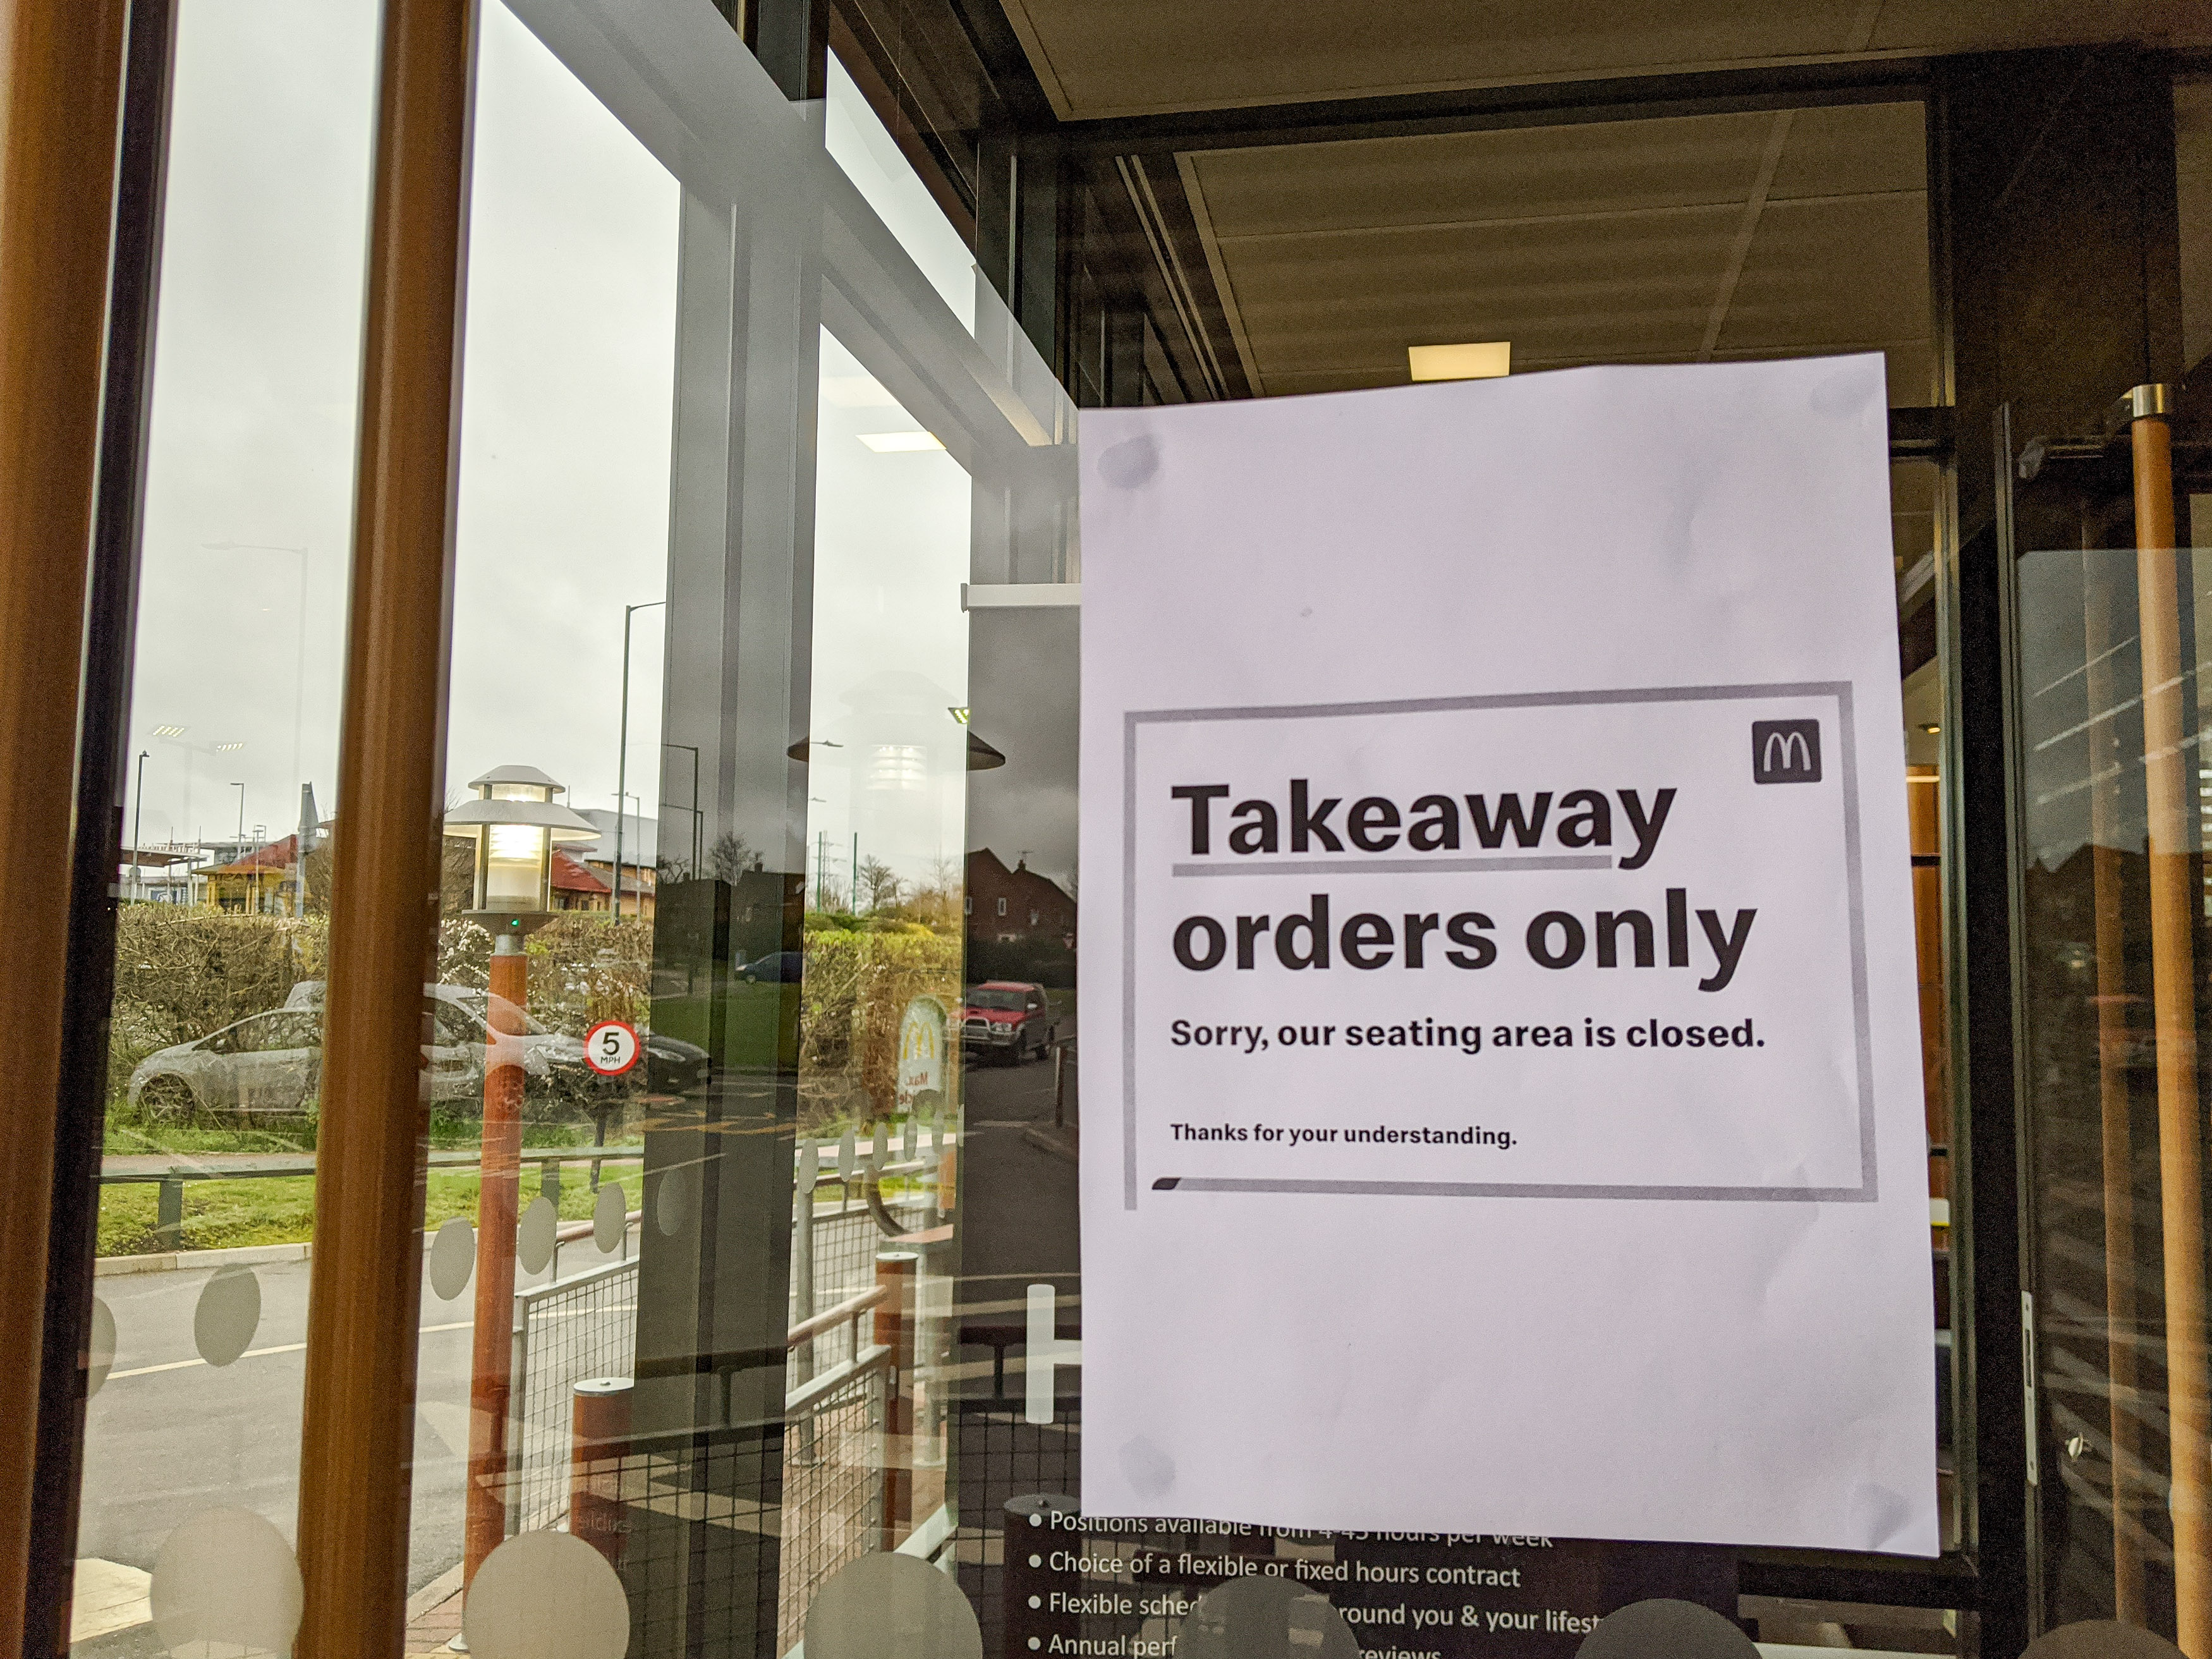 A sign at a Mcdonald's branch in Leamington Spa, Warwickshire. All McDonalds restaurants in the UK and Ireland become takeaways, drive-thrus and delivery operations as the company attempts to cope with the coronavirus outbreak.